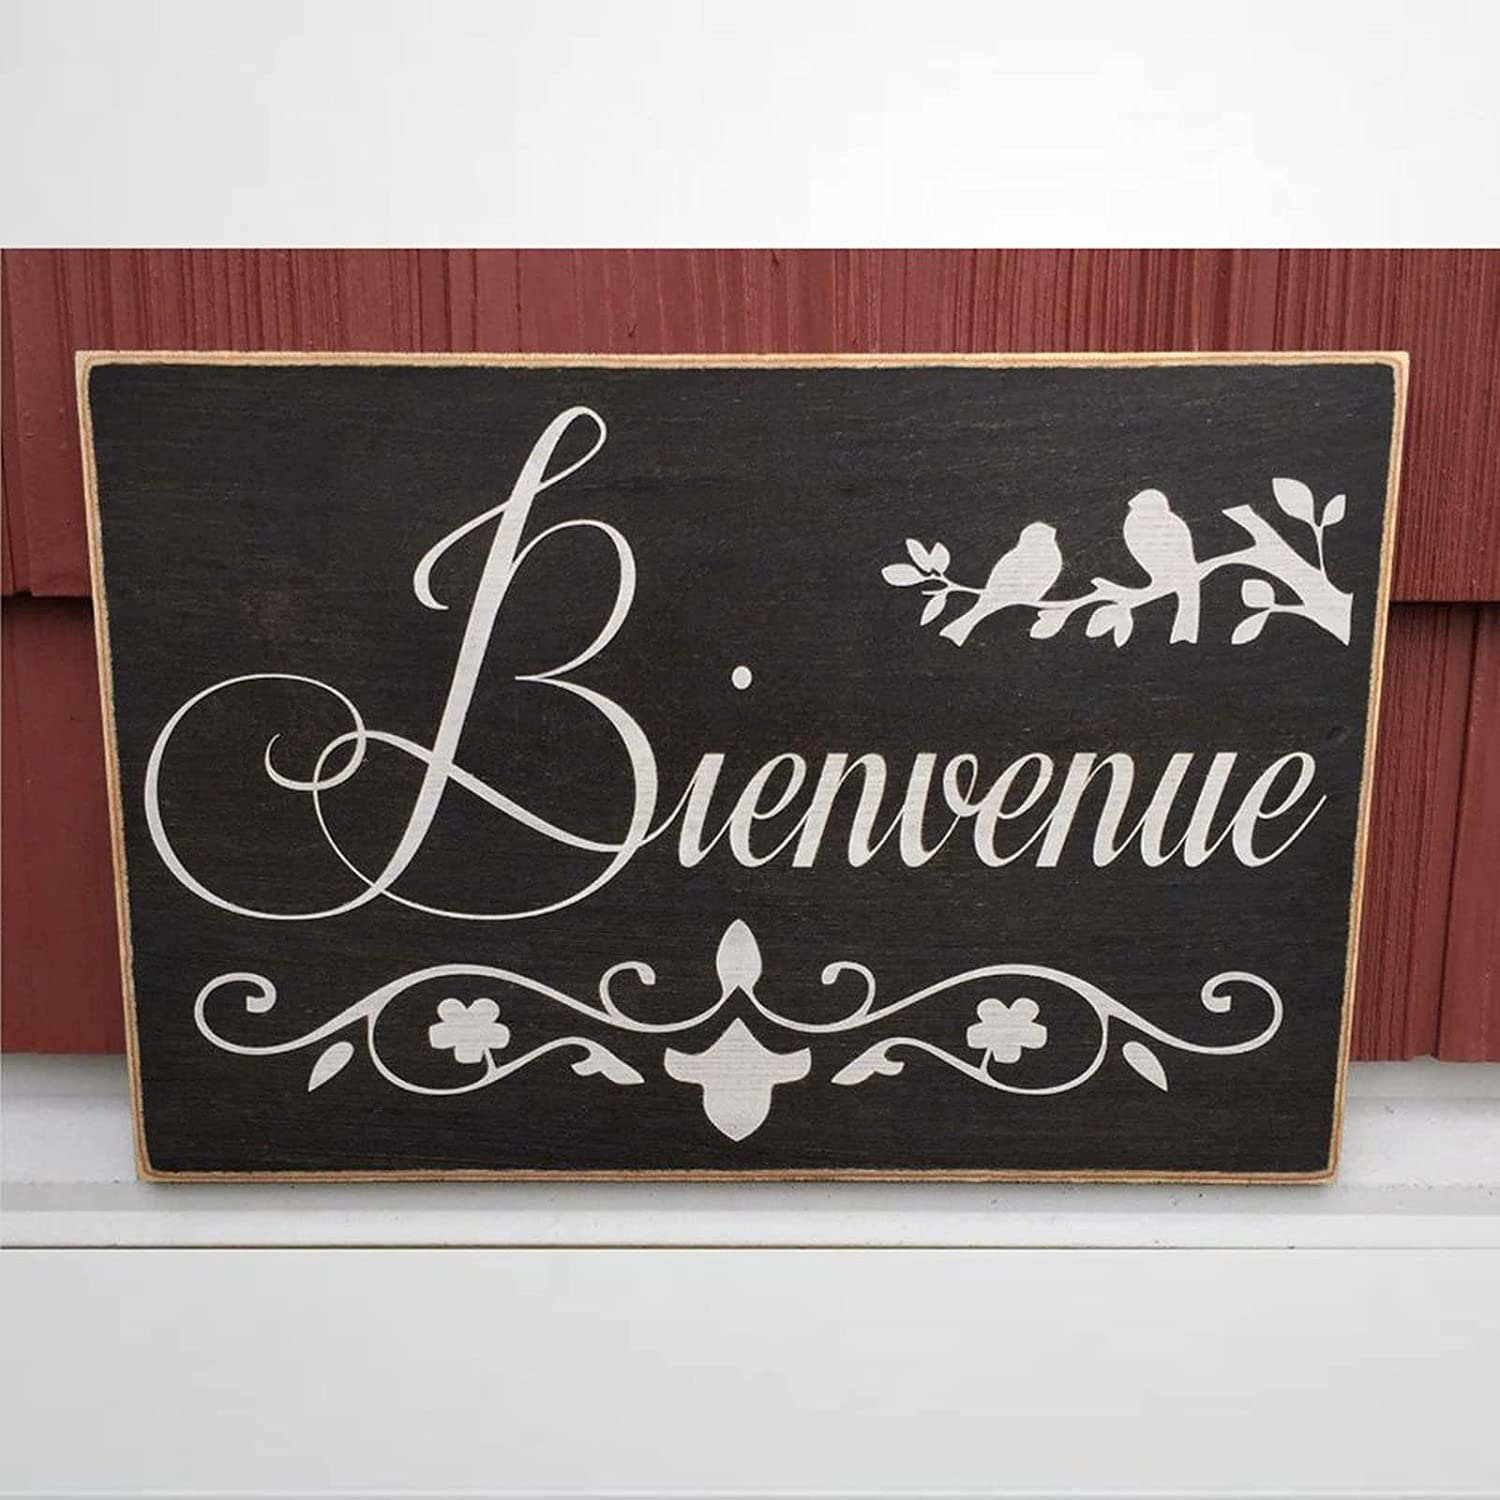 EricauBird Bienvenue 12 X 18 6w Wood Wall Decor Sign,Custom Wood Sign,Wooden Plaque Art for Easter, Father's Day,Mother's Day,Home,Gardens.